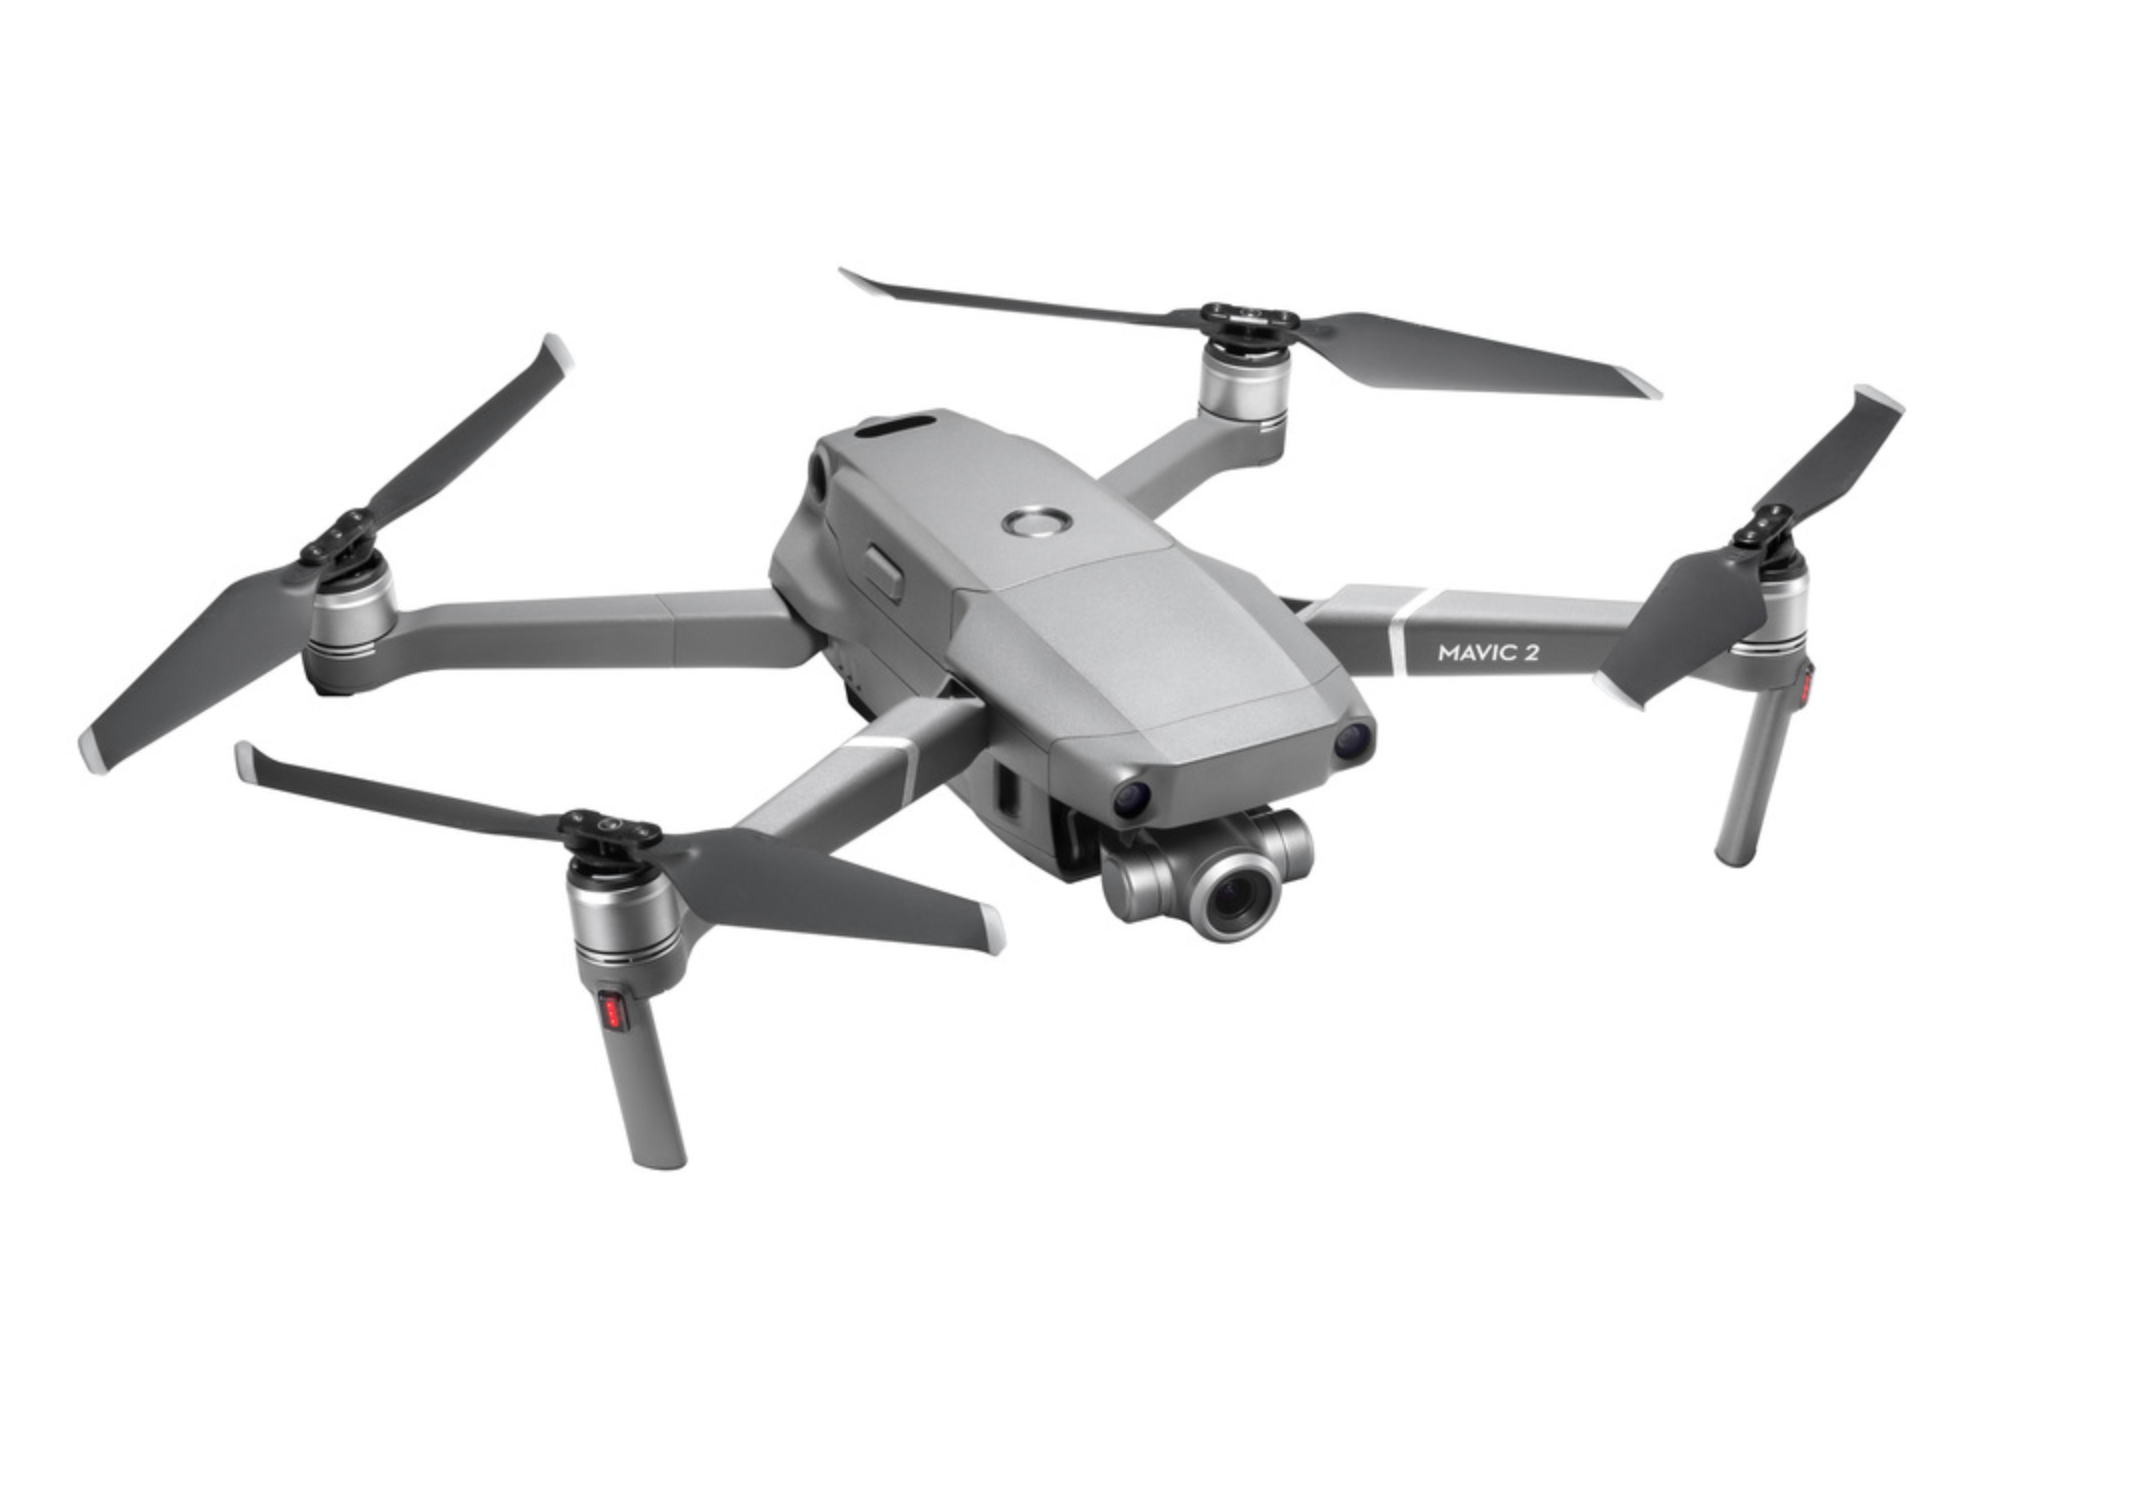 DJI Mavic 2 Zoom - how to connect to Sync for DJI and download video